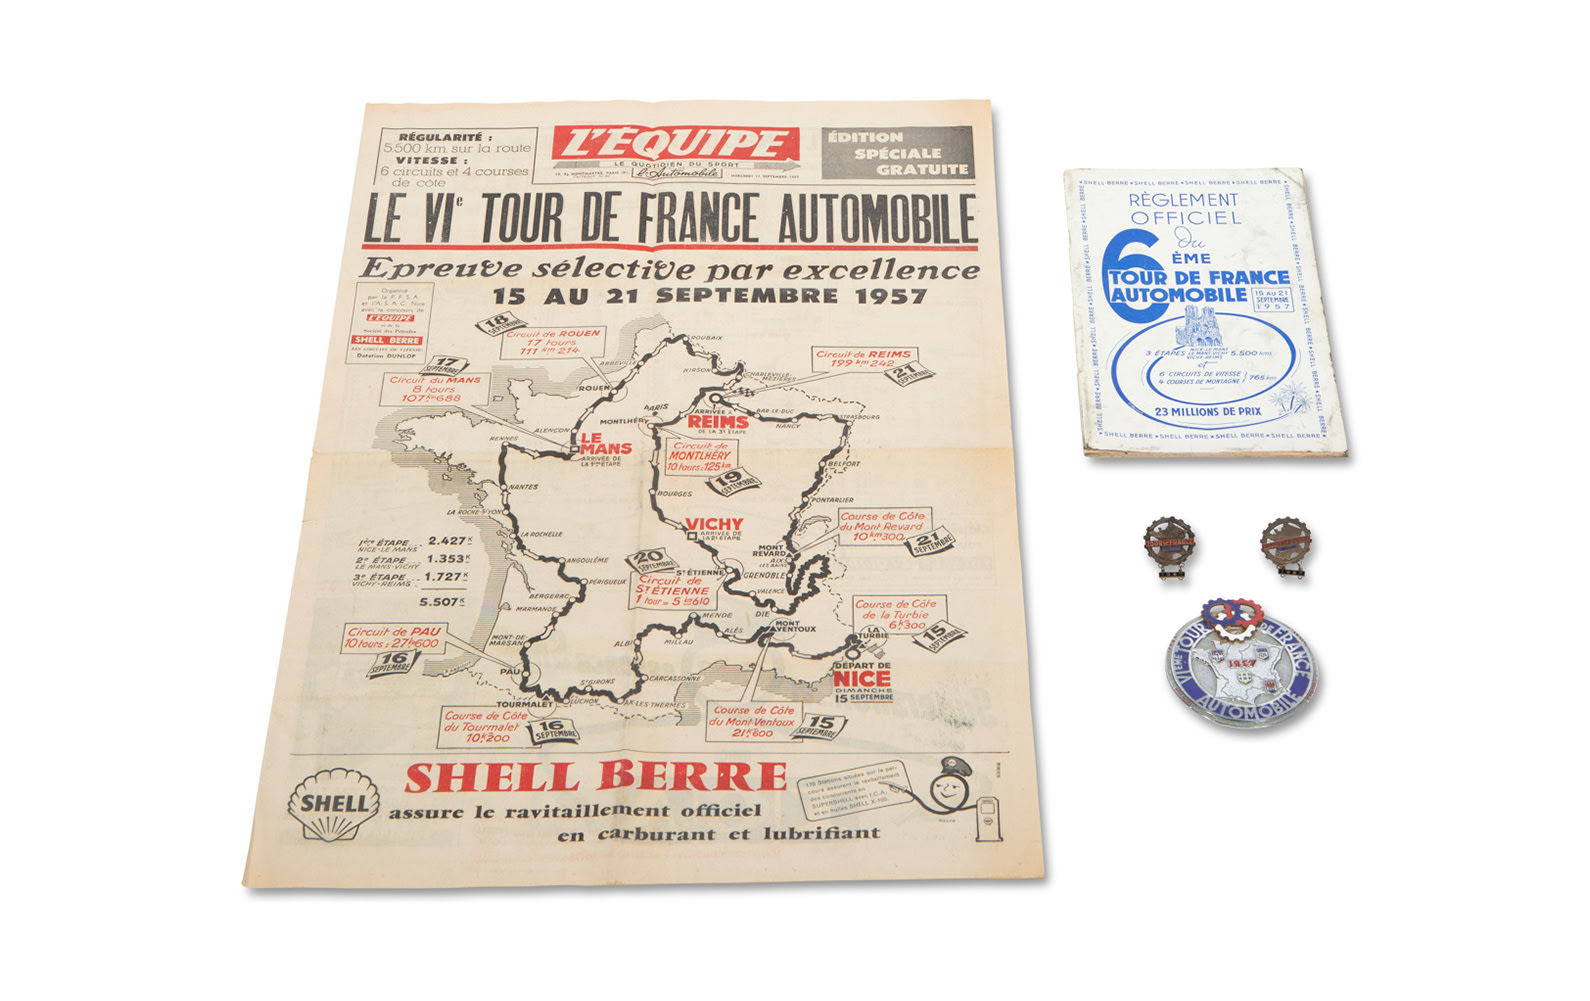 1957 Tour de France Automobile Official Rulebook, Cover of L'Equipe Newspaper, Event Badge, and Two Event Medallions